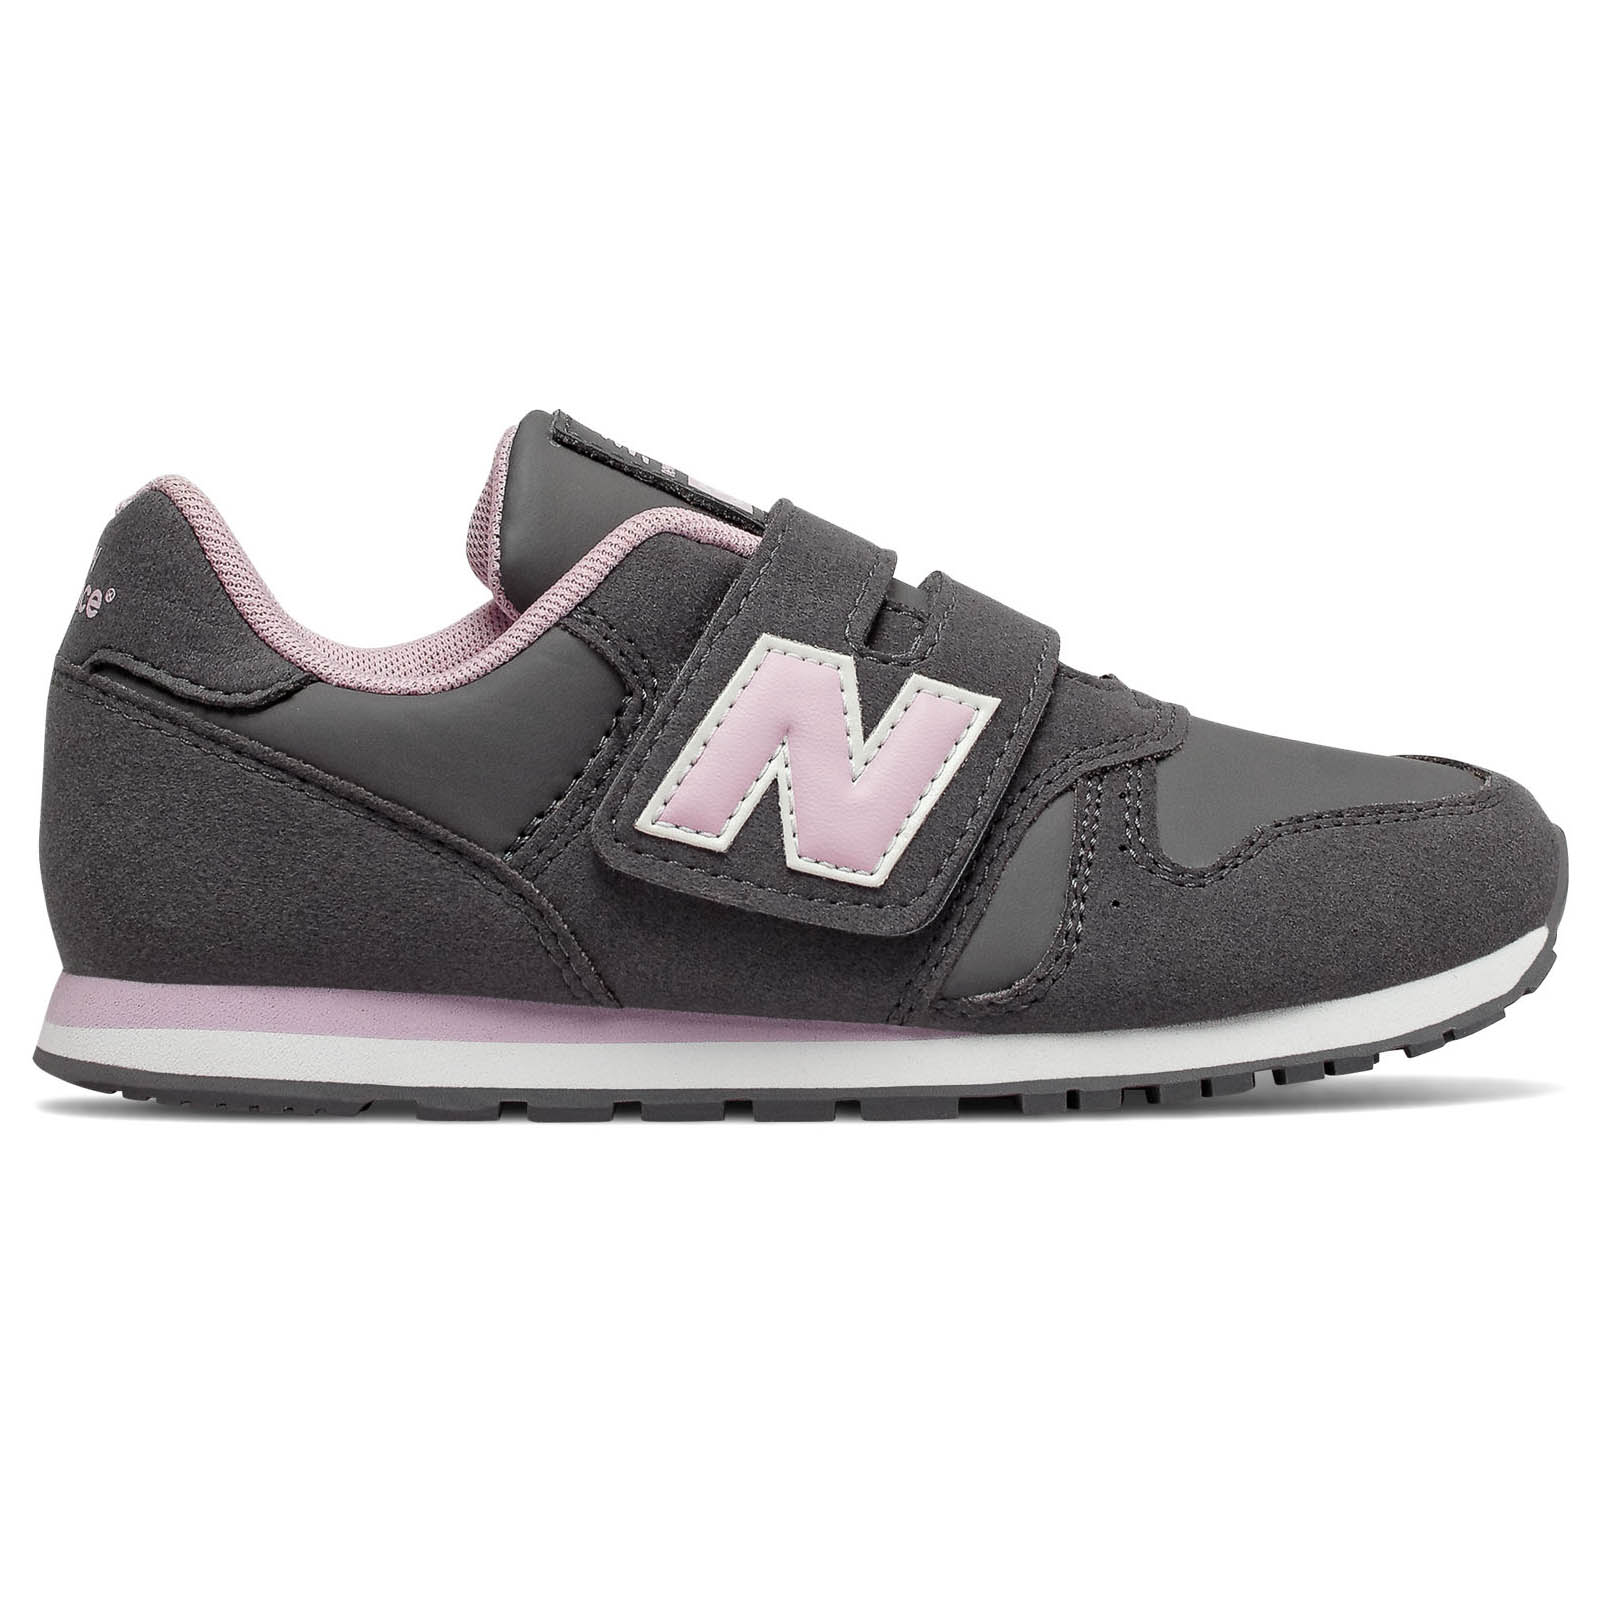 New Balance 373 Grey/pink - Sneakers